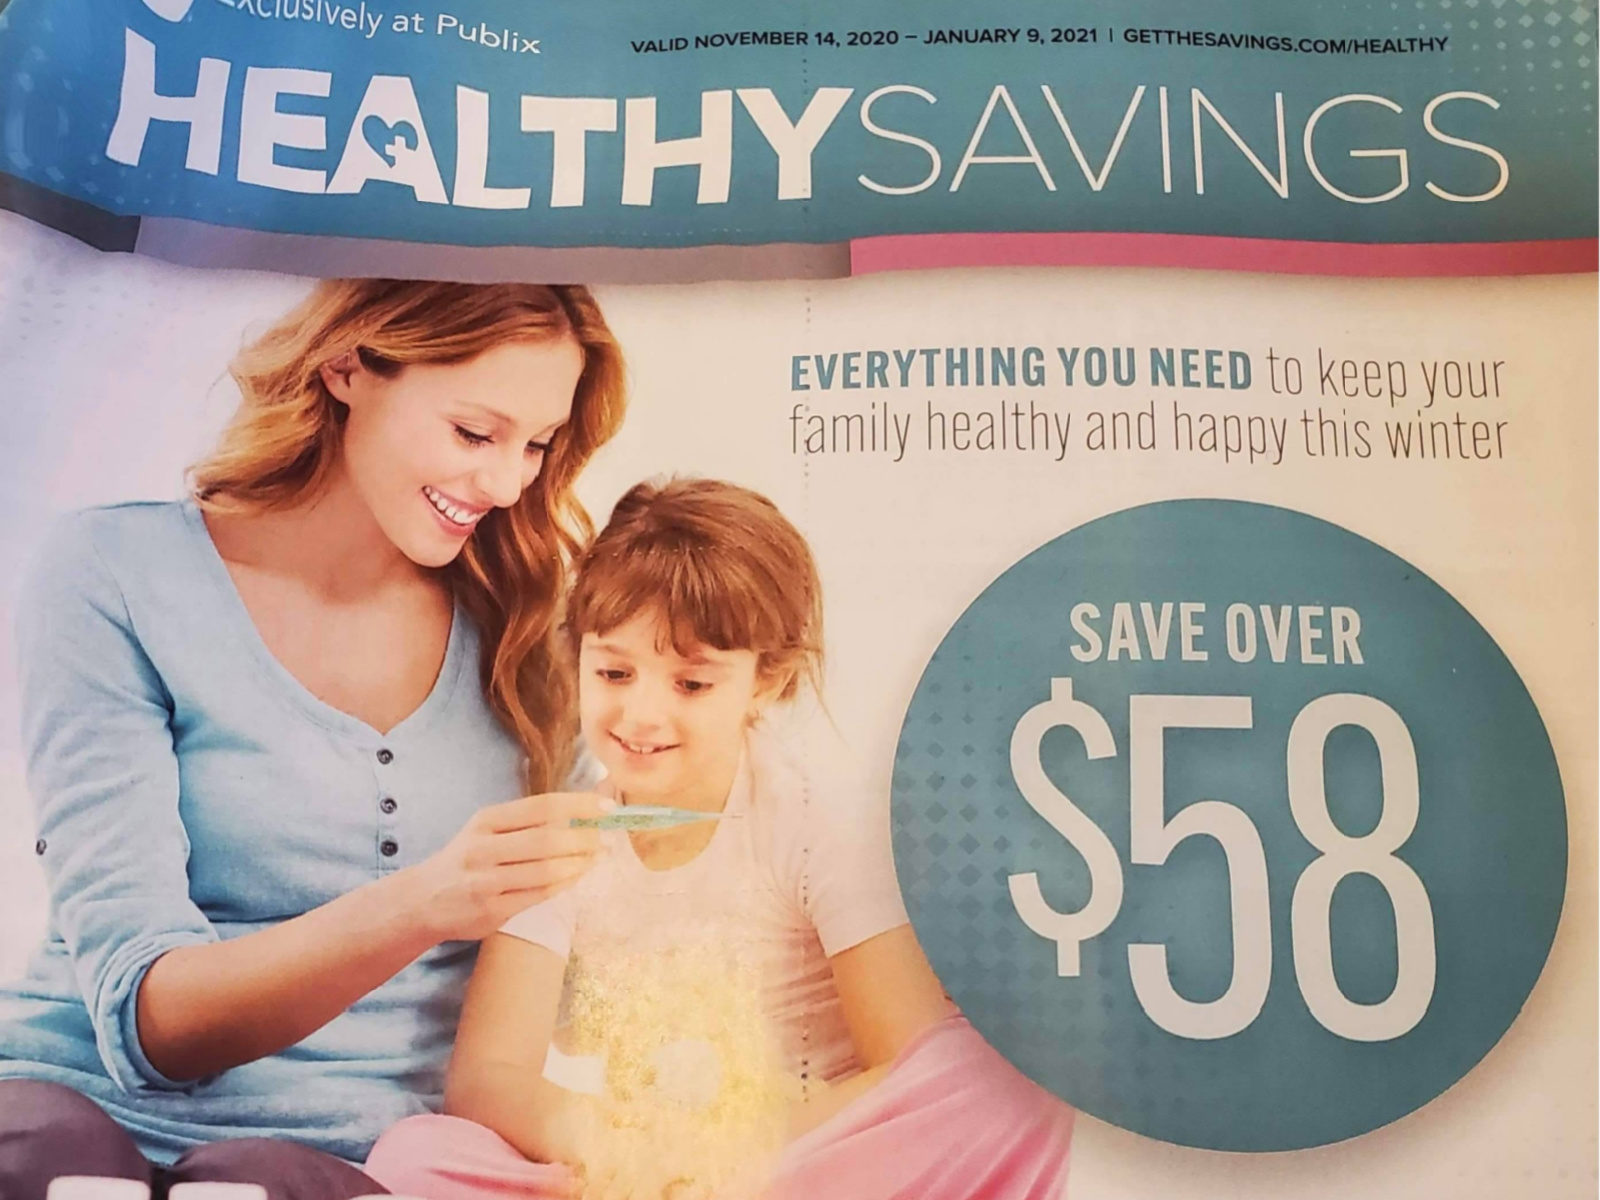 New Publix Booklet - Healthy Savings Valid 11/14 - 1/9 on I Heart Publix